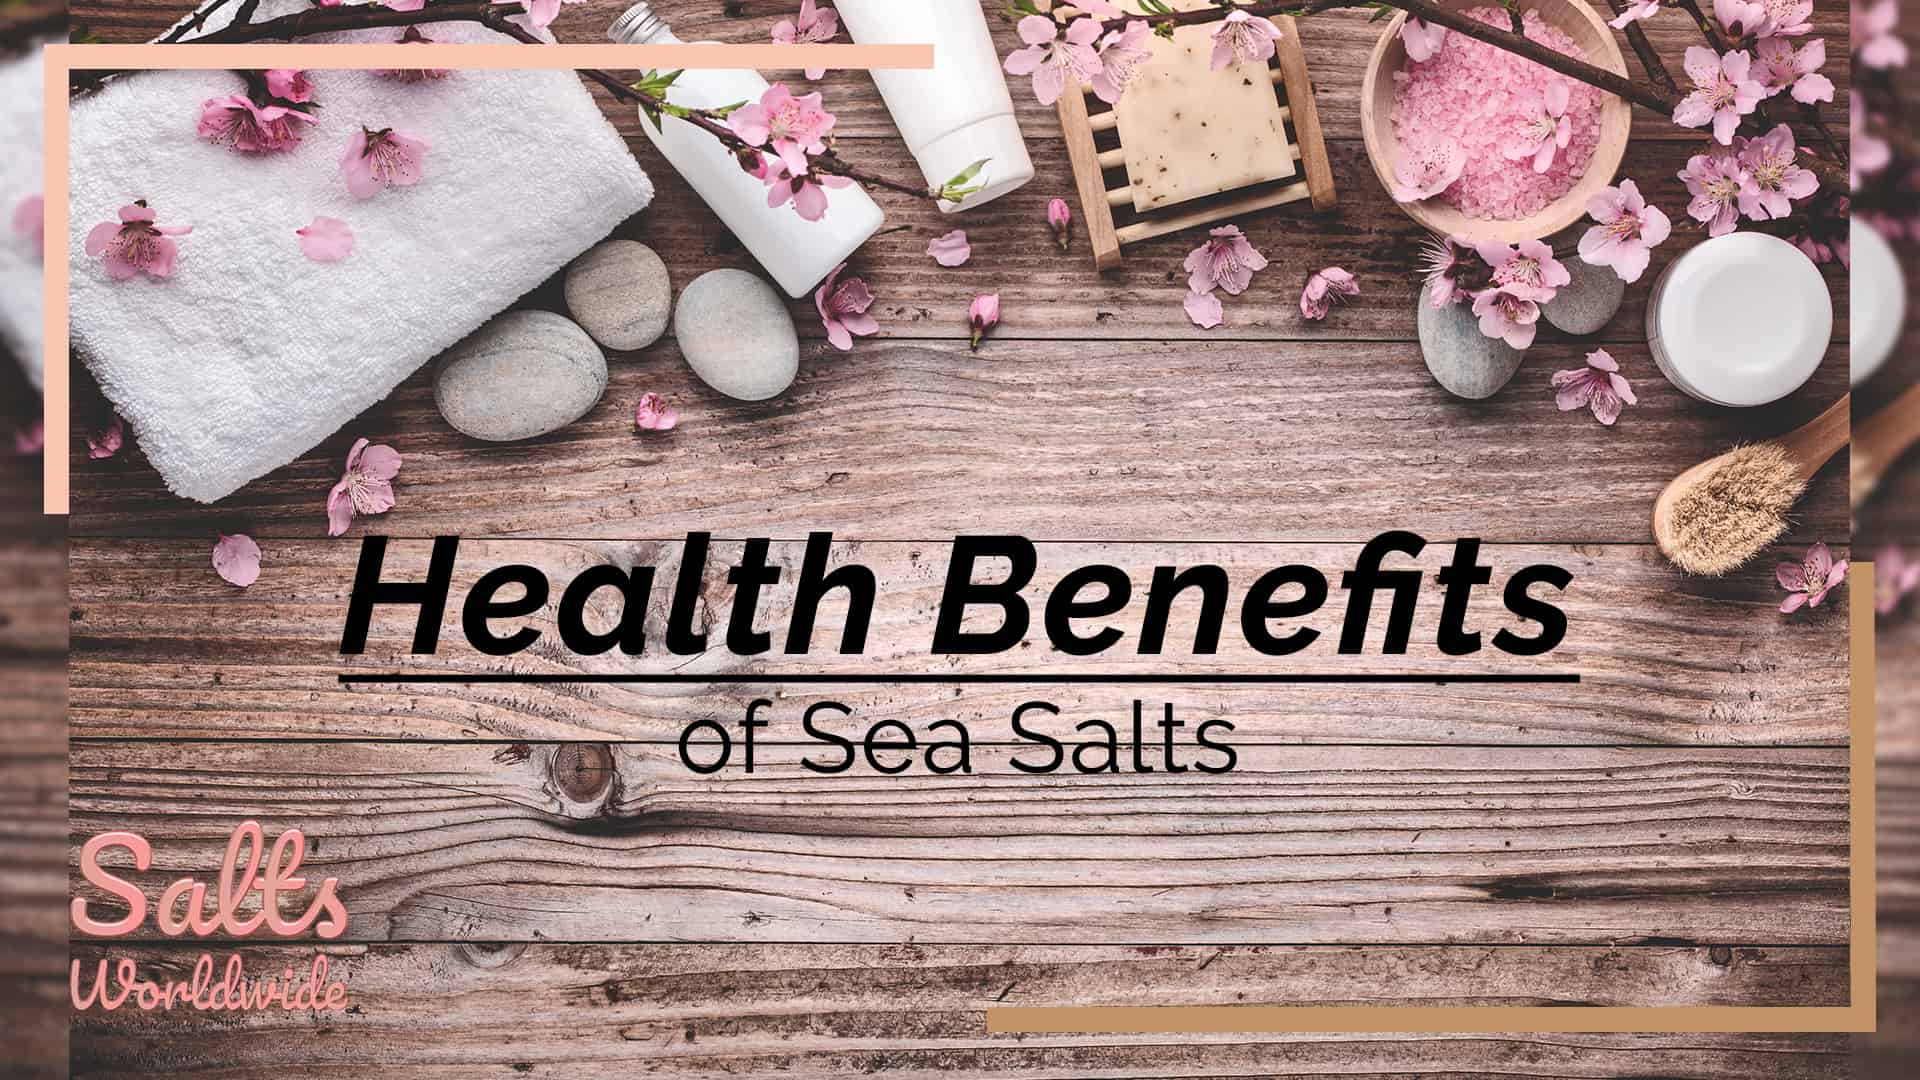 Health Benefits of Sea Salts - featured image